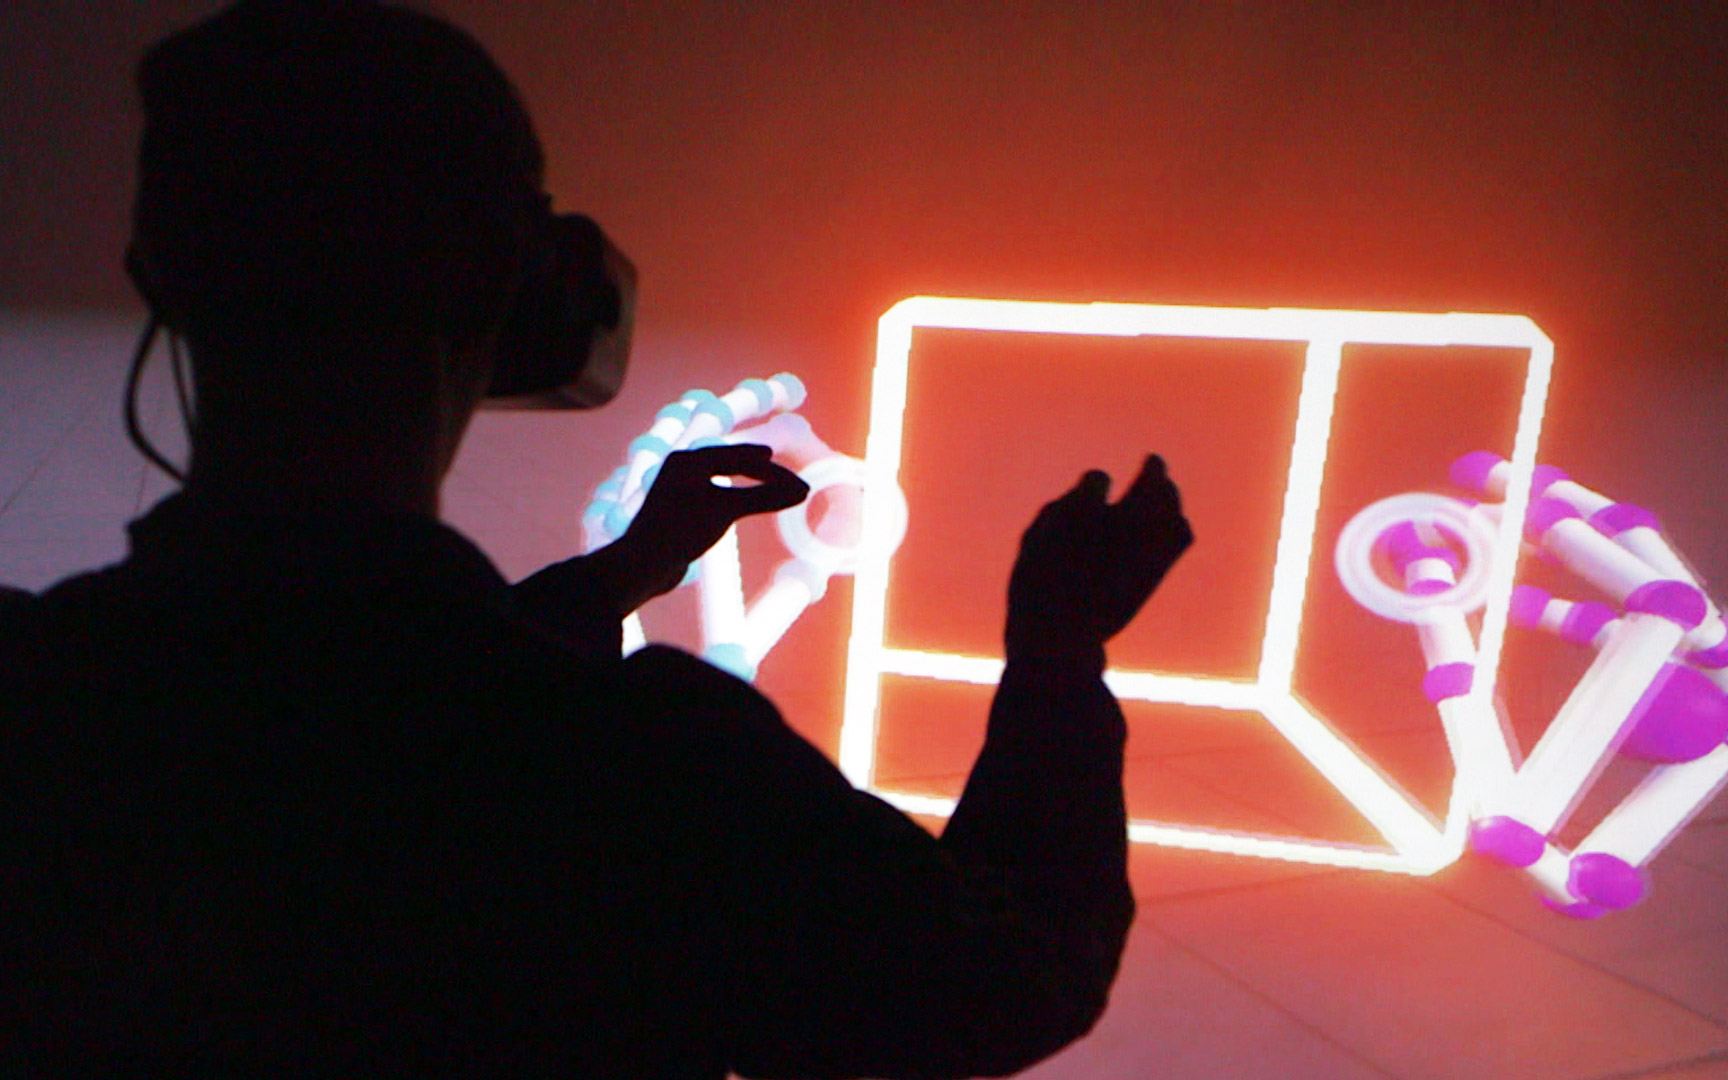 Leap Motion (Ultraleap) no gloves or VR controllers required